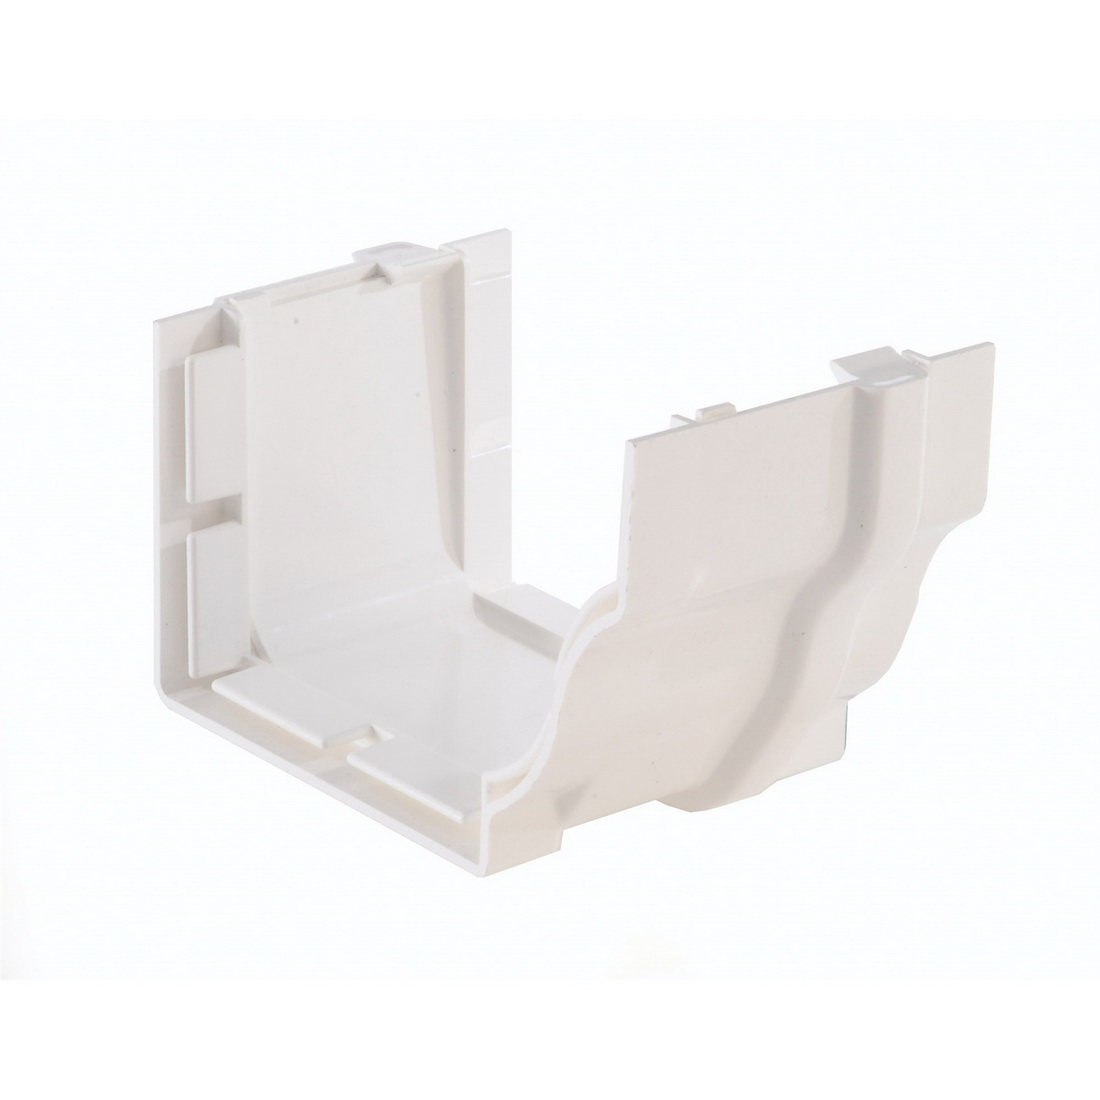 Marley Classic Expansion Joiner 130 x 100 x 80 mm Unplasticised PVC MC17